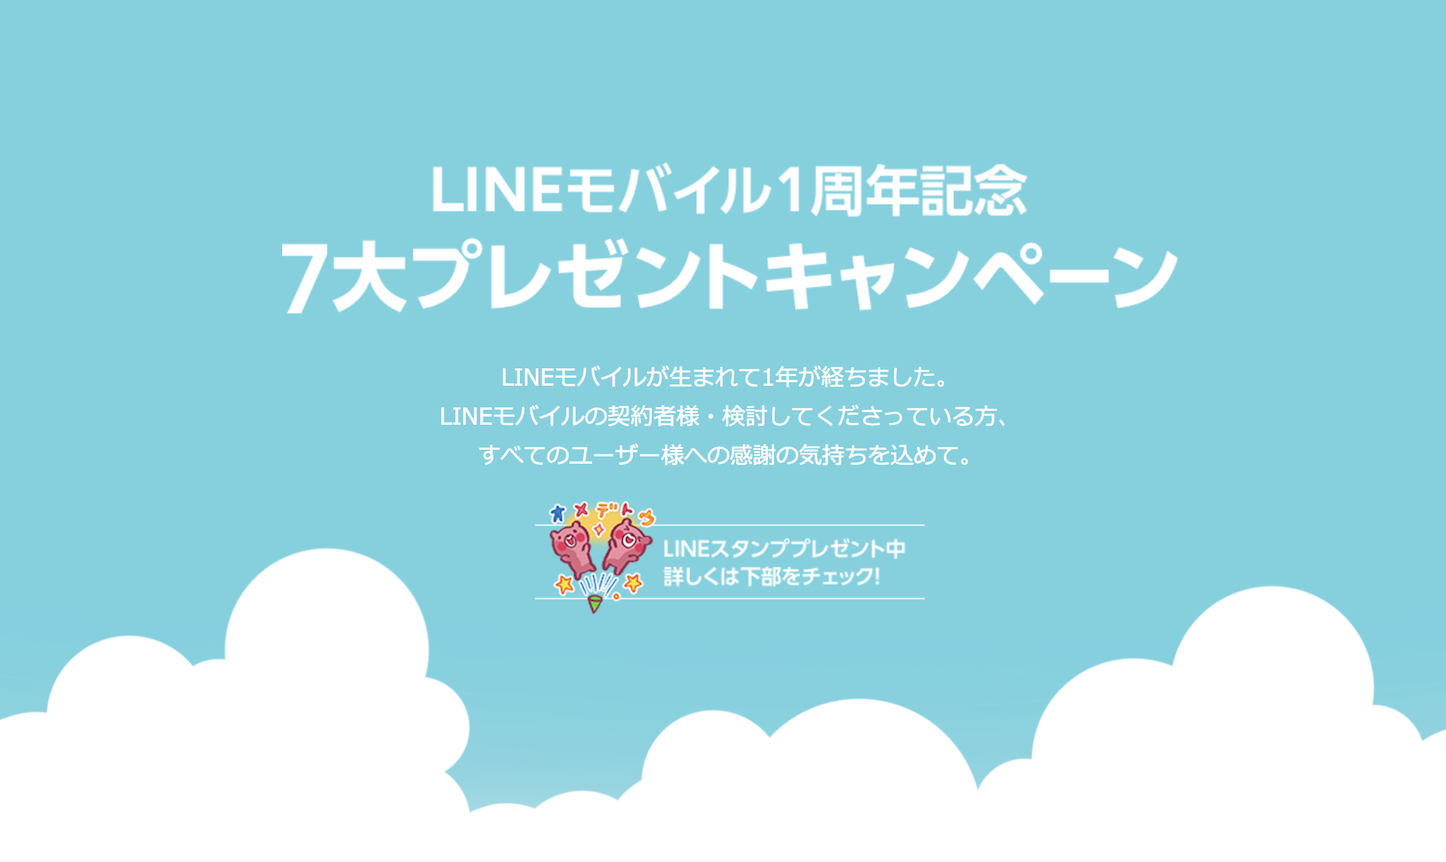 Line Mobile 1Year Campaign